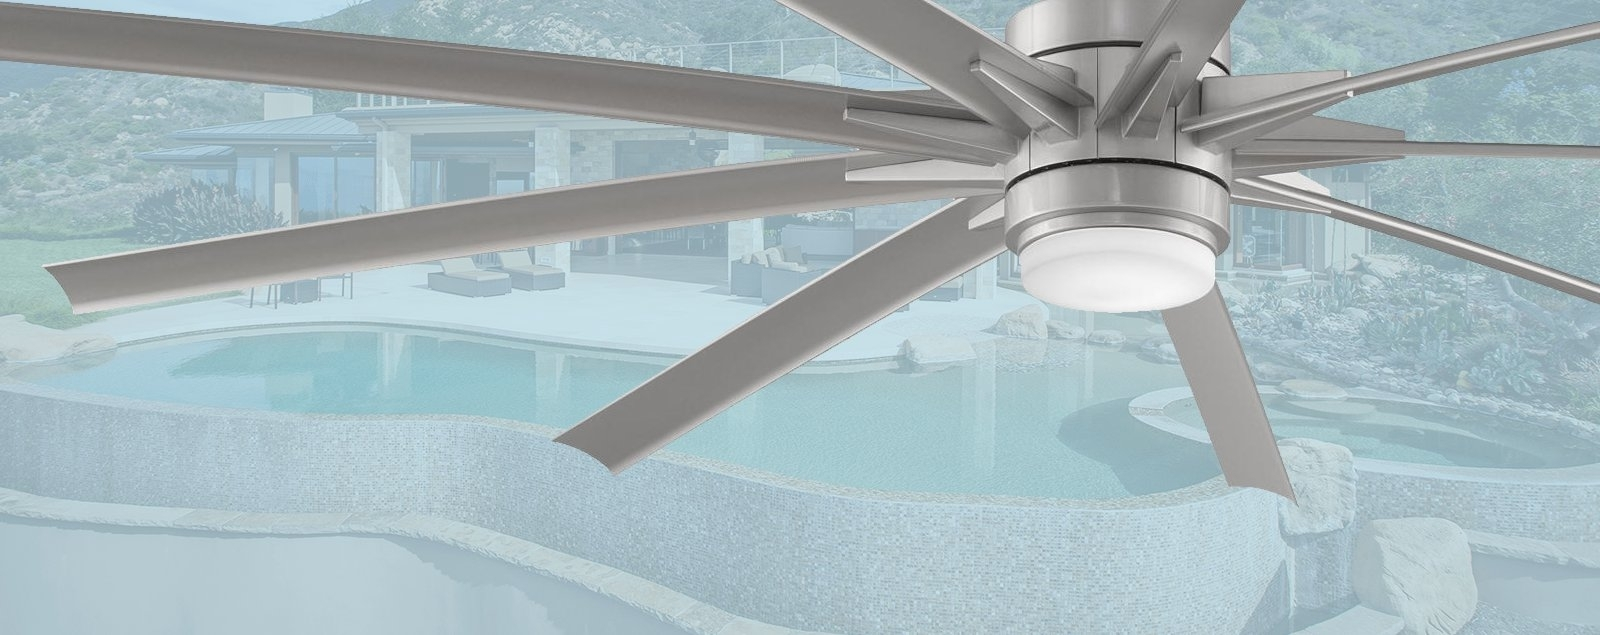 "Well Known Large Outdoor Ceiling Fans – Outdoor Fans Over 60"" In Diameter In High Volume Outdoor Ceiling Fans (View 19 of 20)"